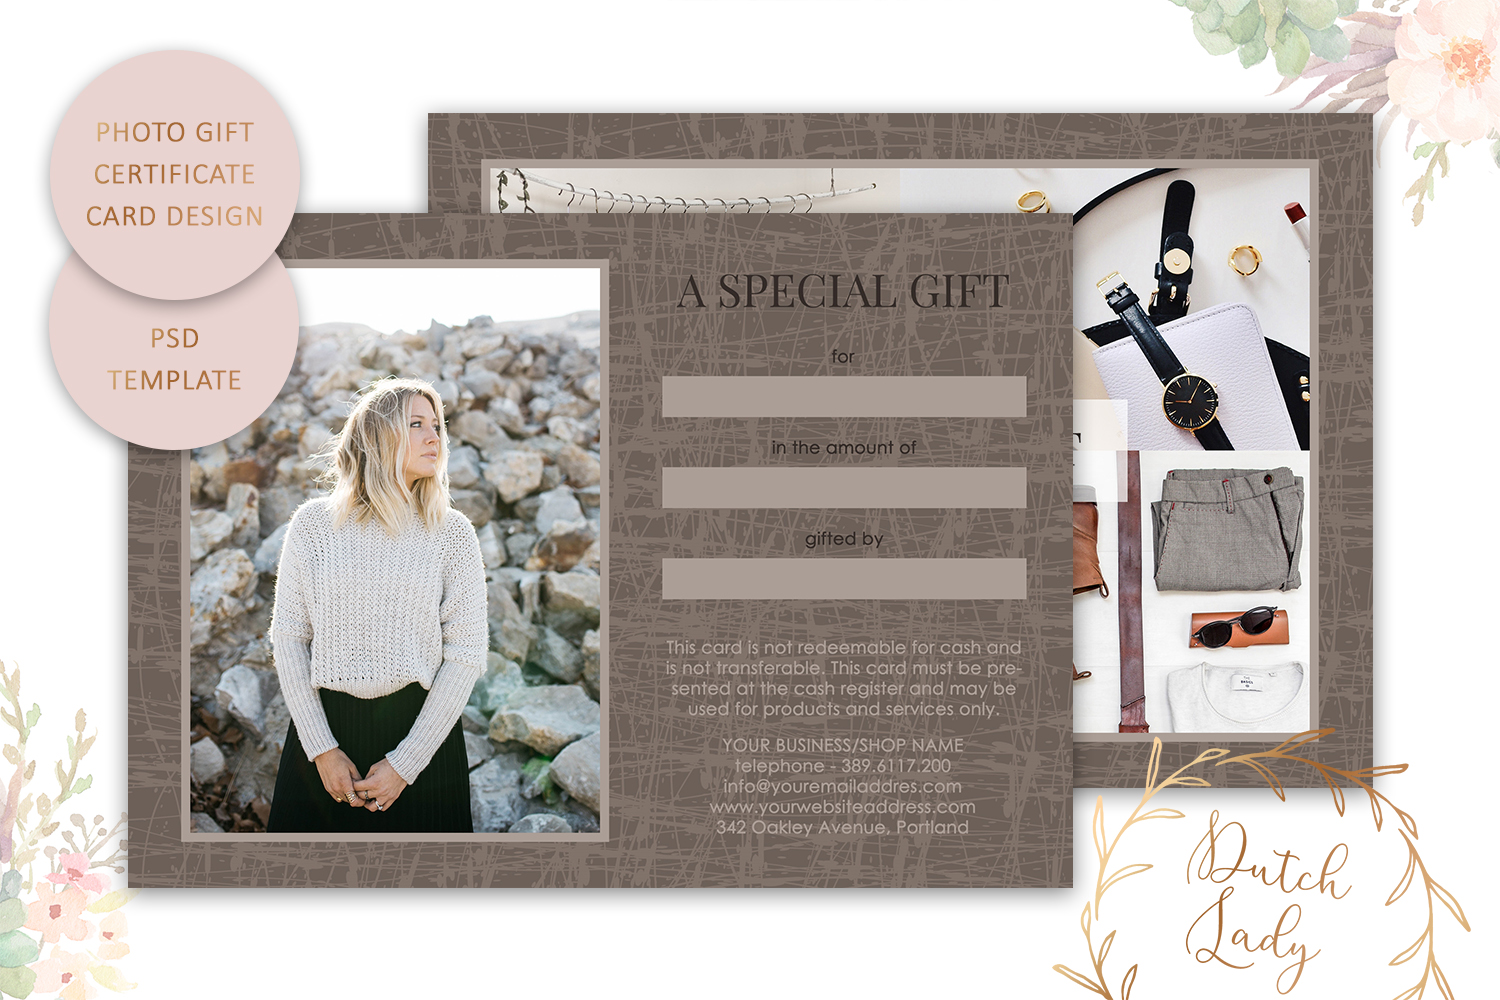 Photo Gift Card Template for Adobe Photoshop - #29 example image 2